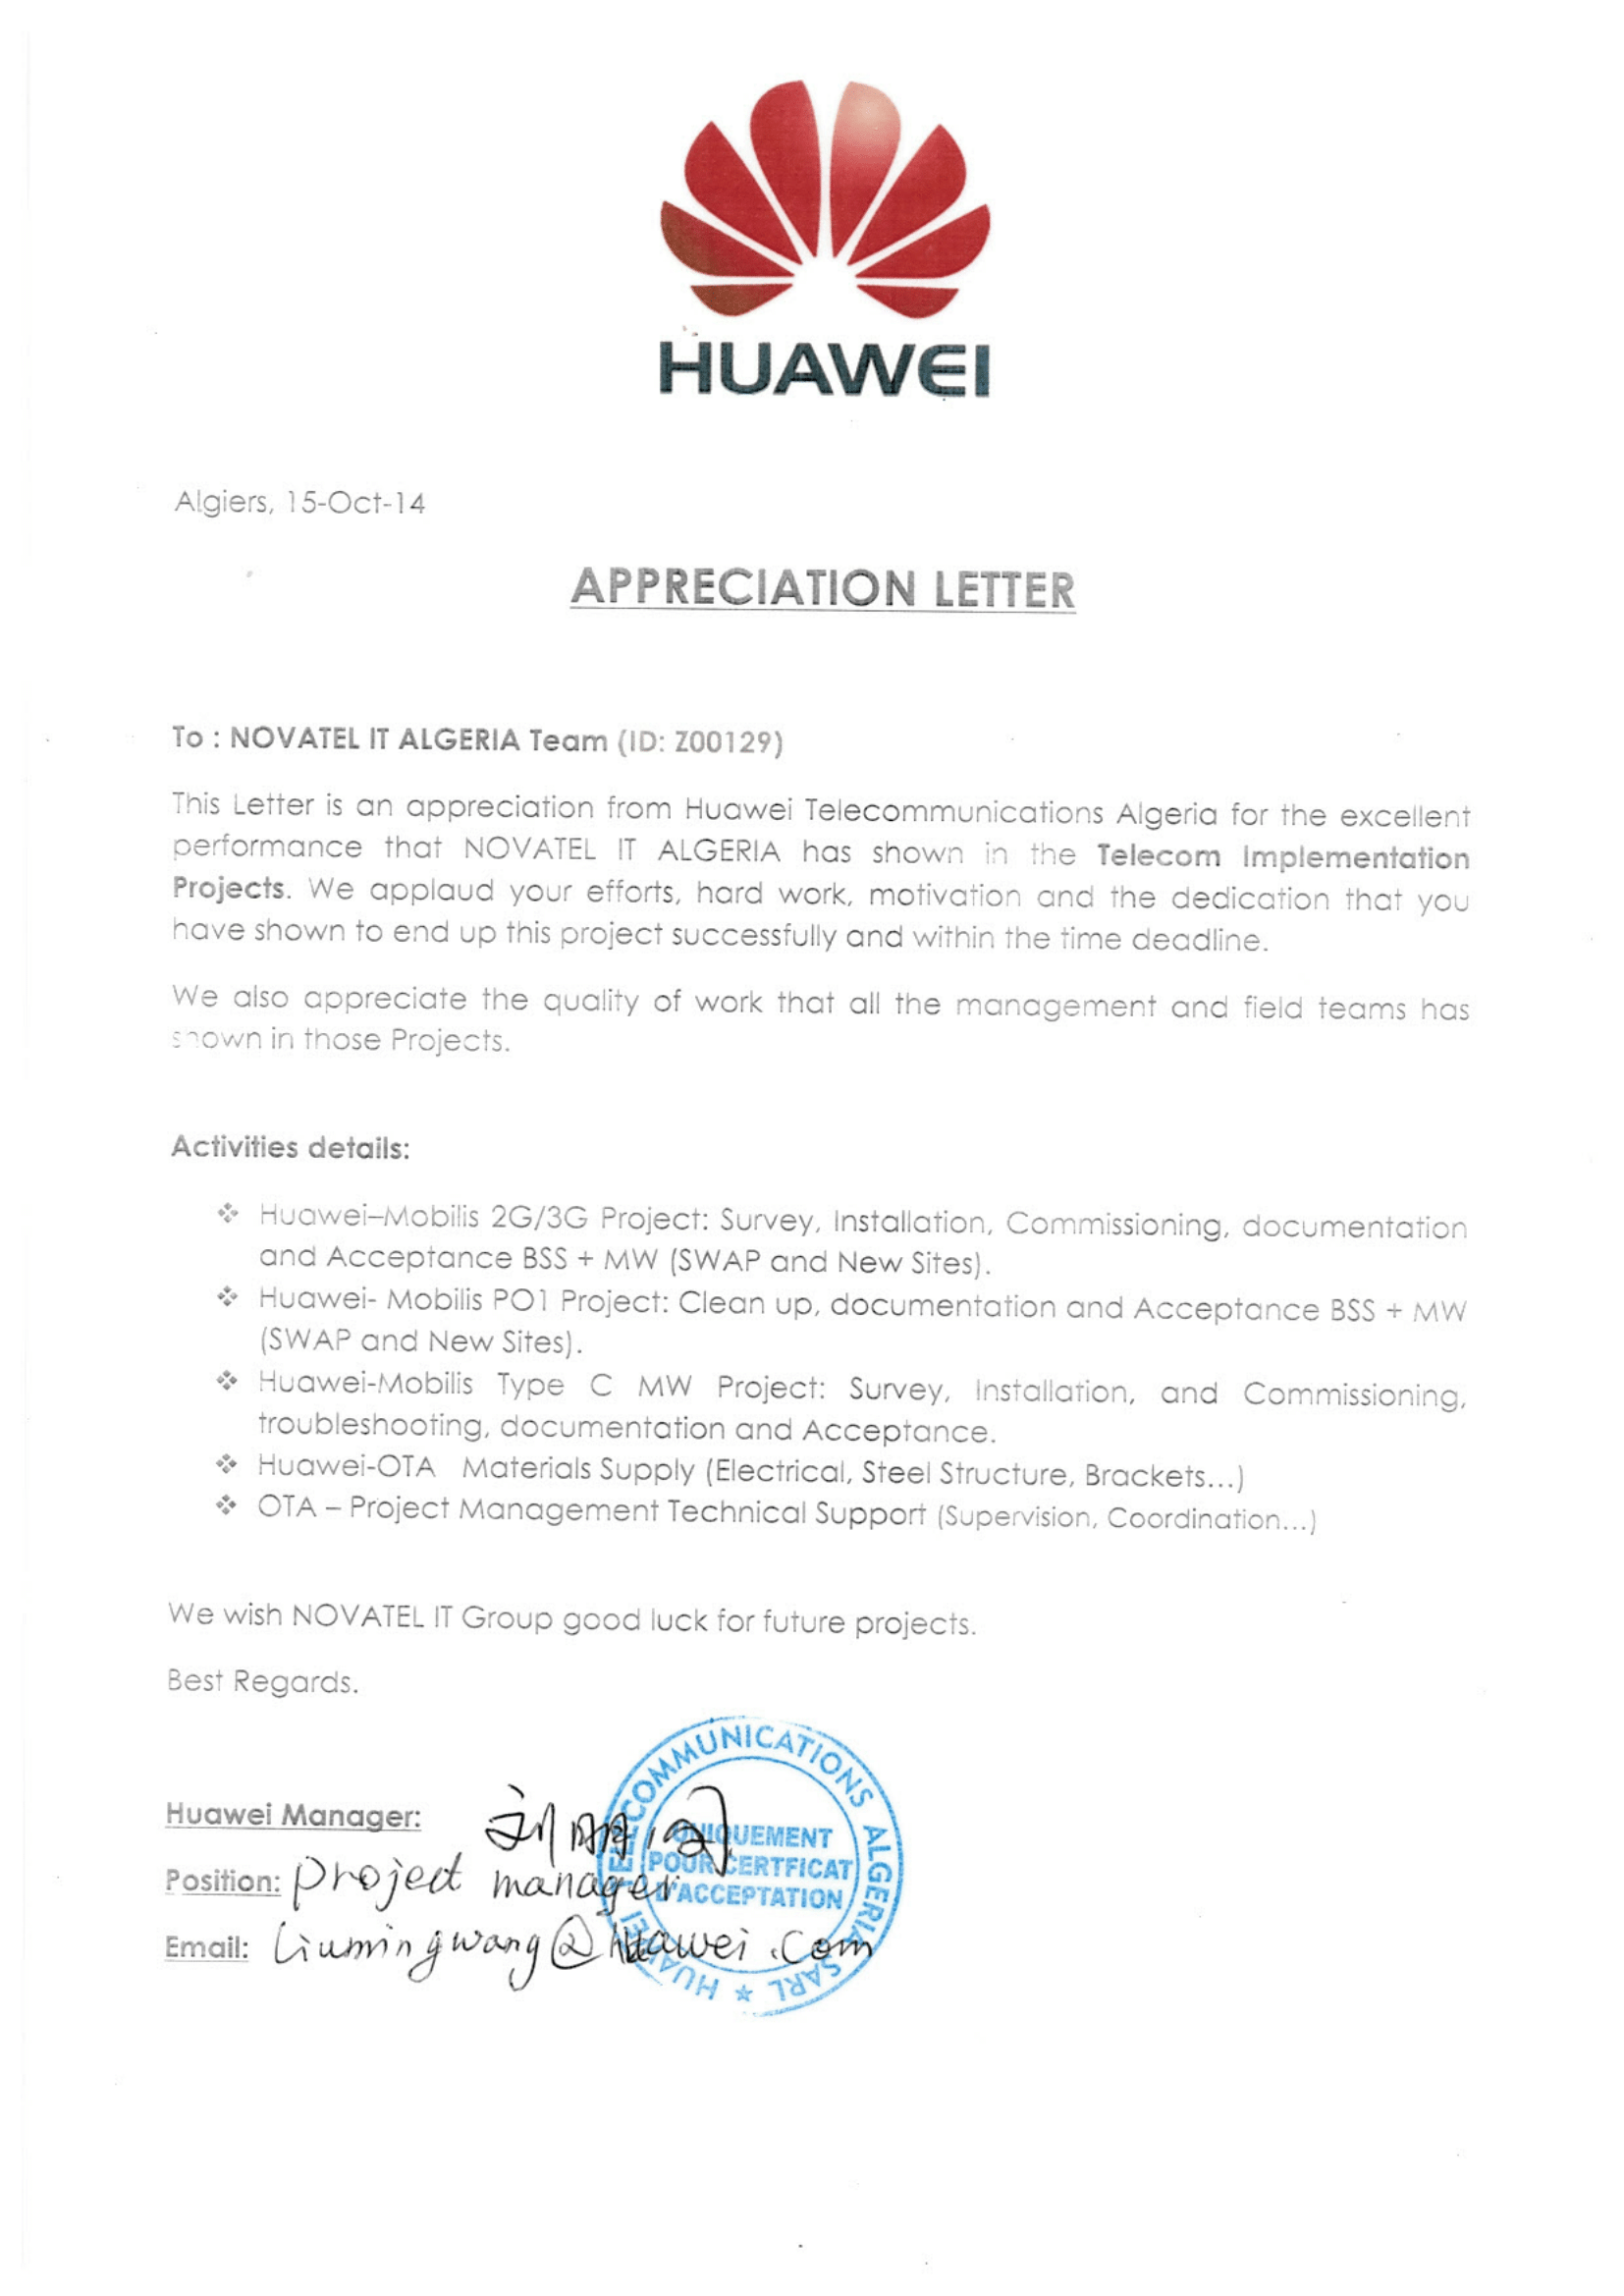 2-2-3-huaweialg_novatel_appreciation-letter_ti_materials_outsourcing-2